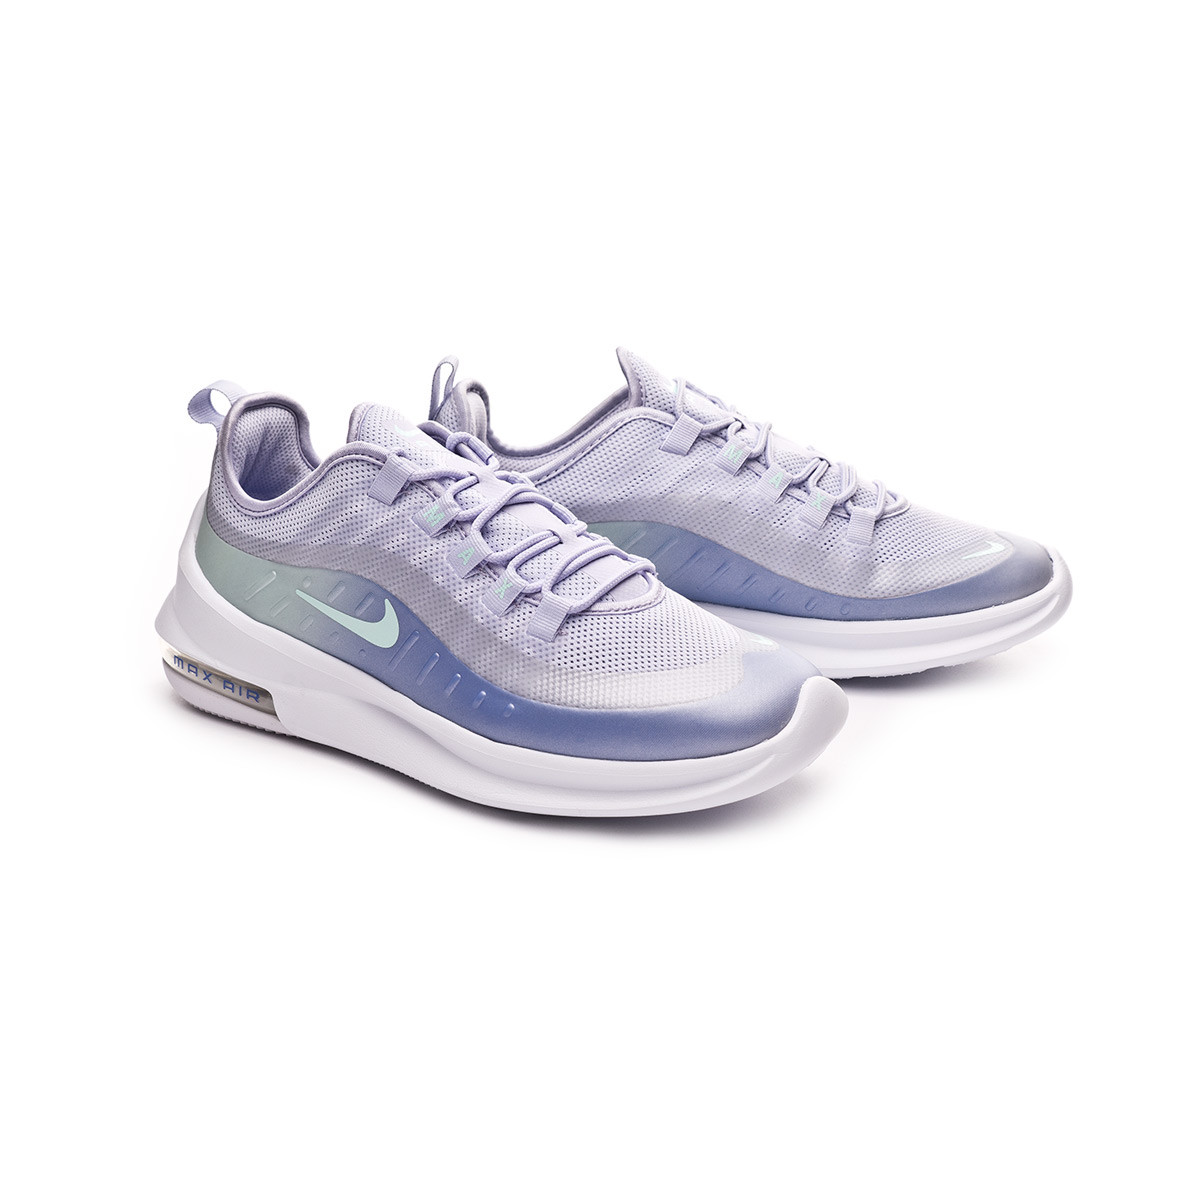 9ef5b61e Trainers Nike Air Max Axis Premium Mujer Oxigen purple-Teal tint ...